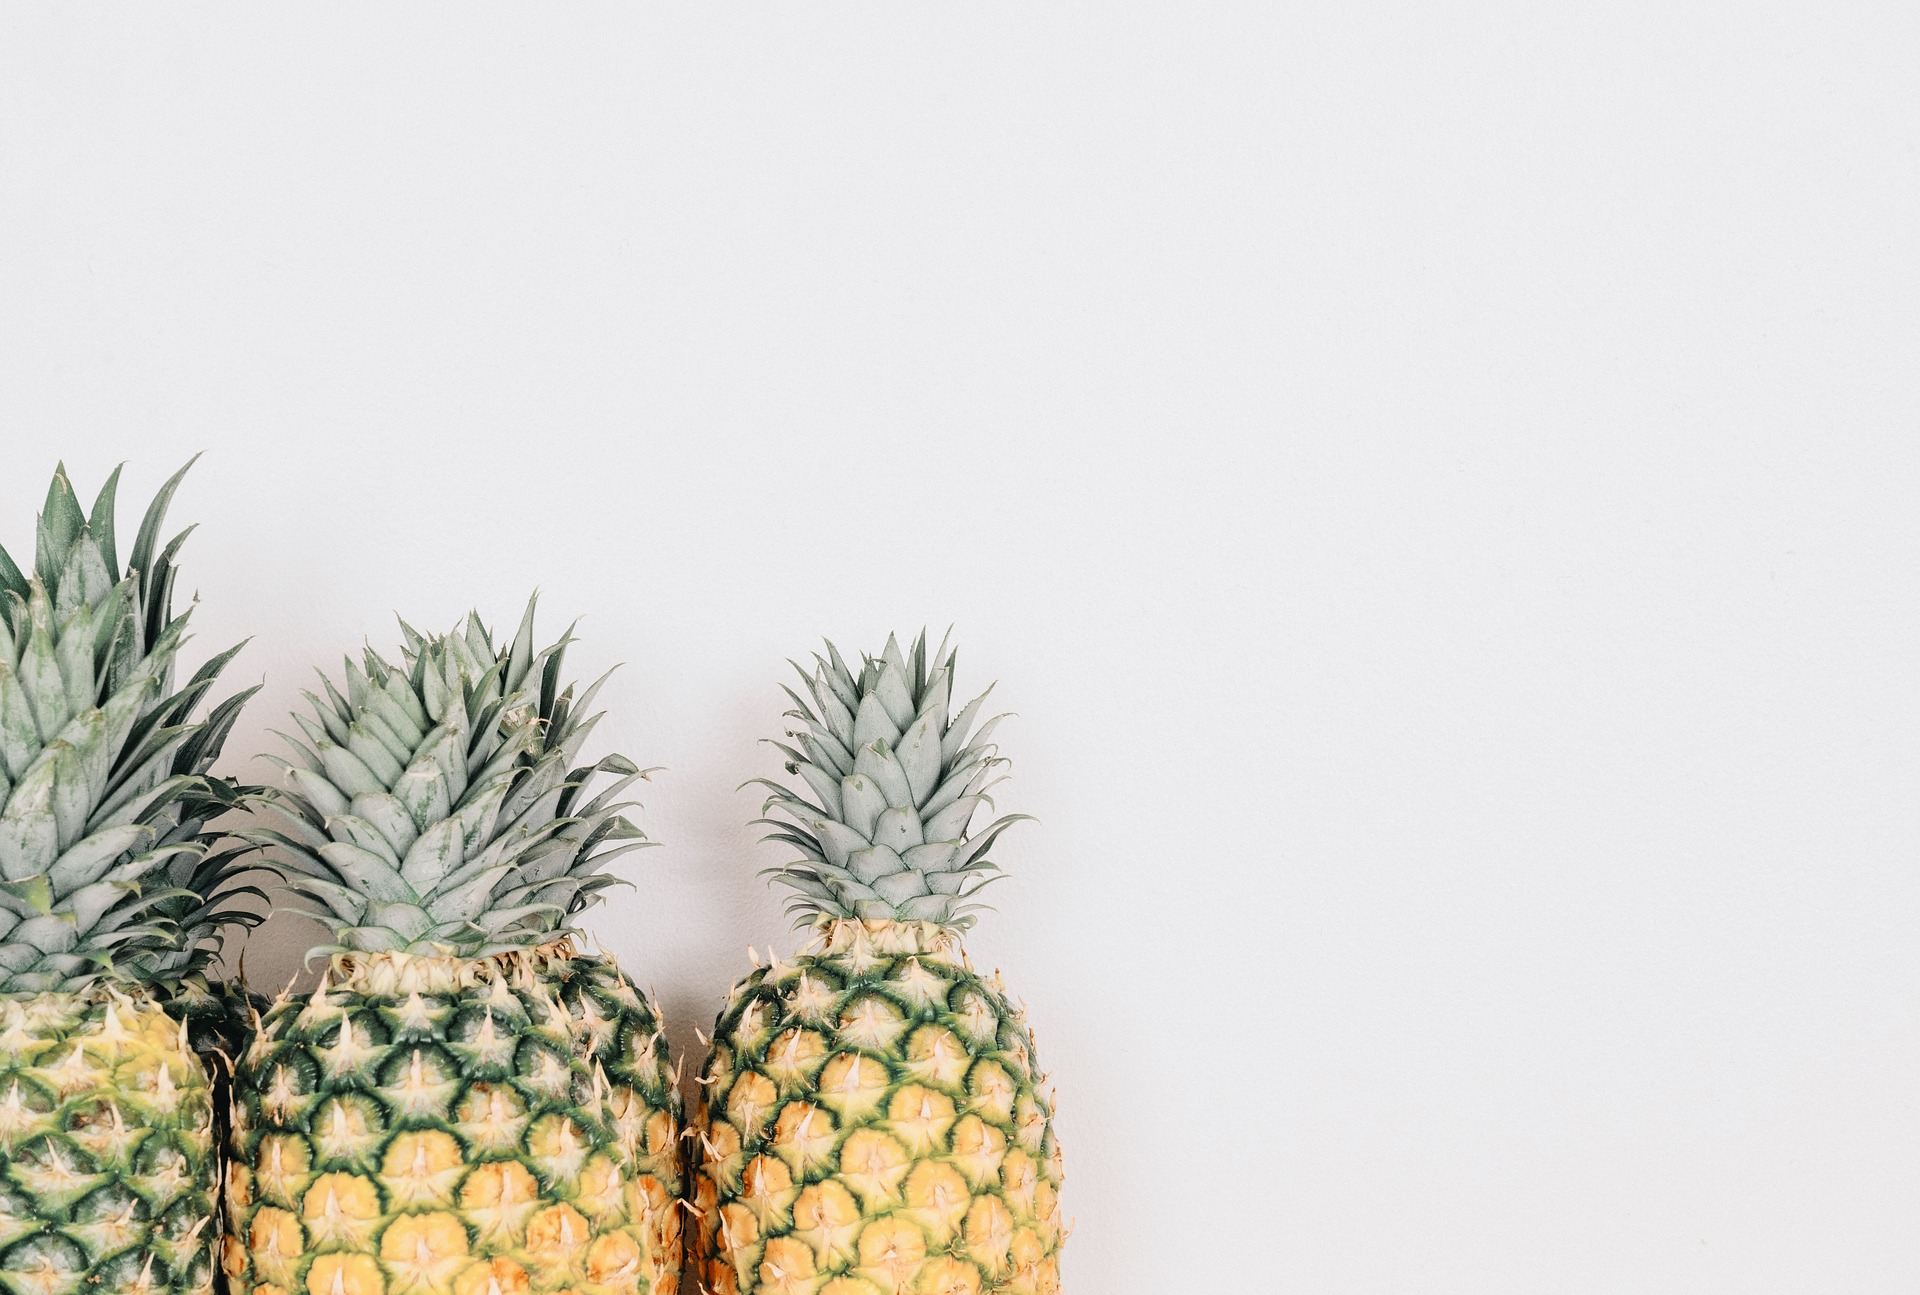 Three pineapples in descending size from left pictured in the lower left corner with blank white space all around.